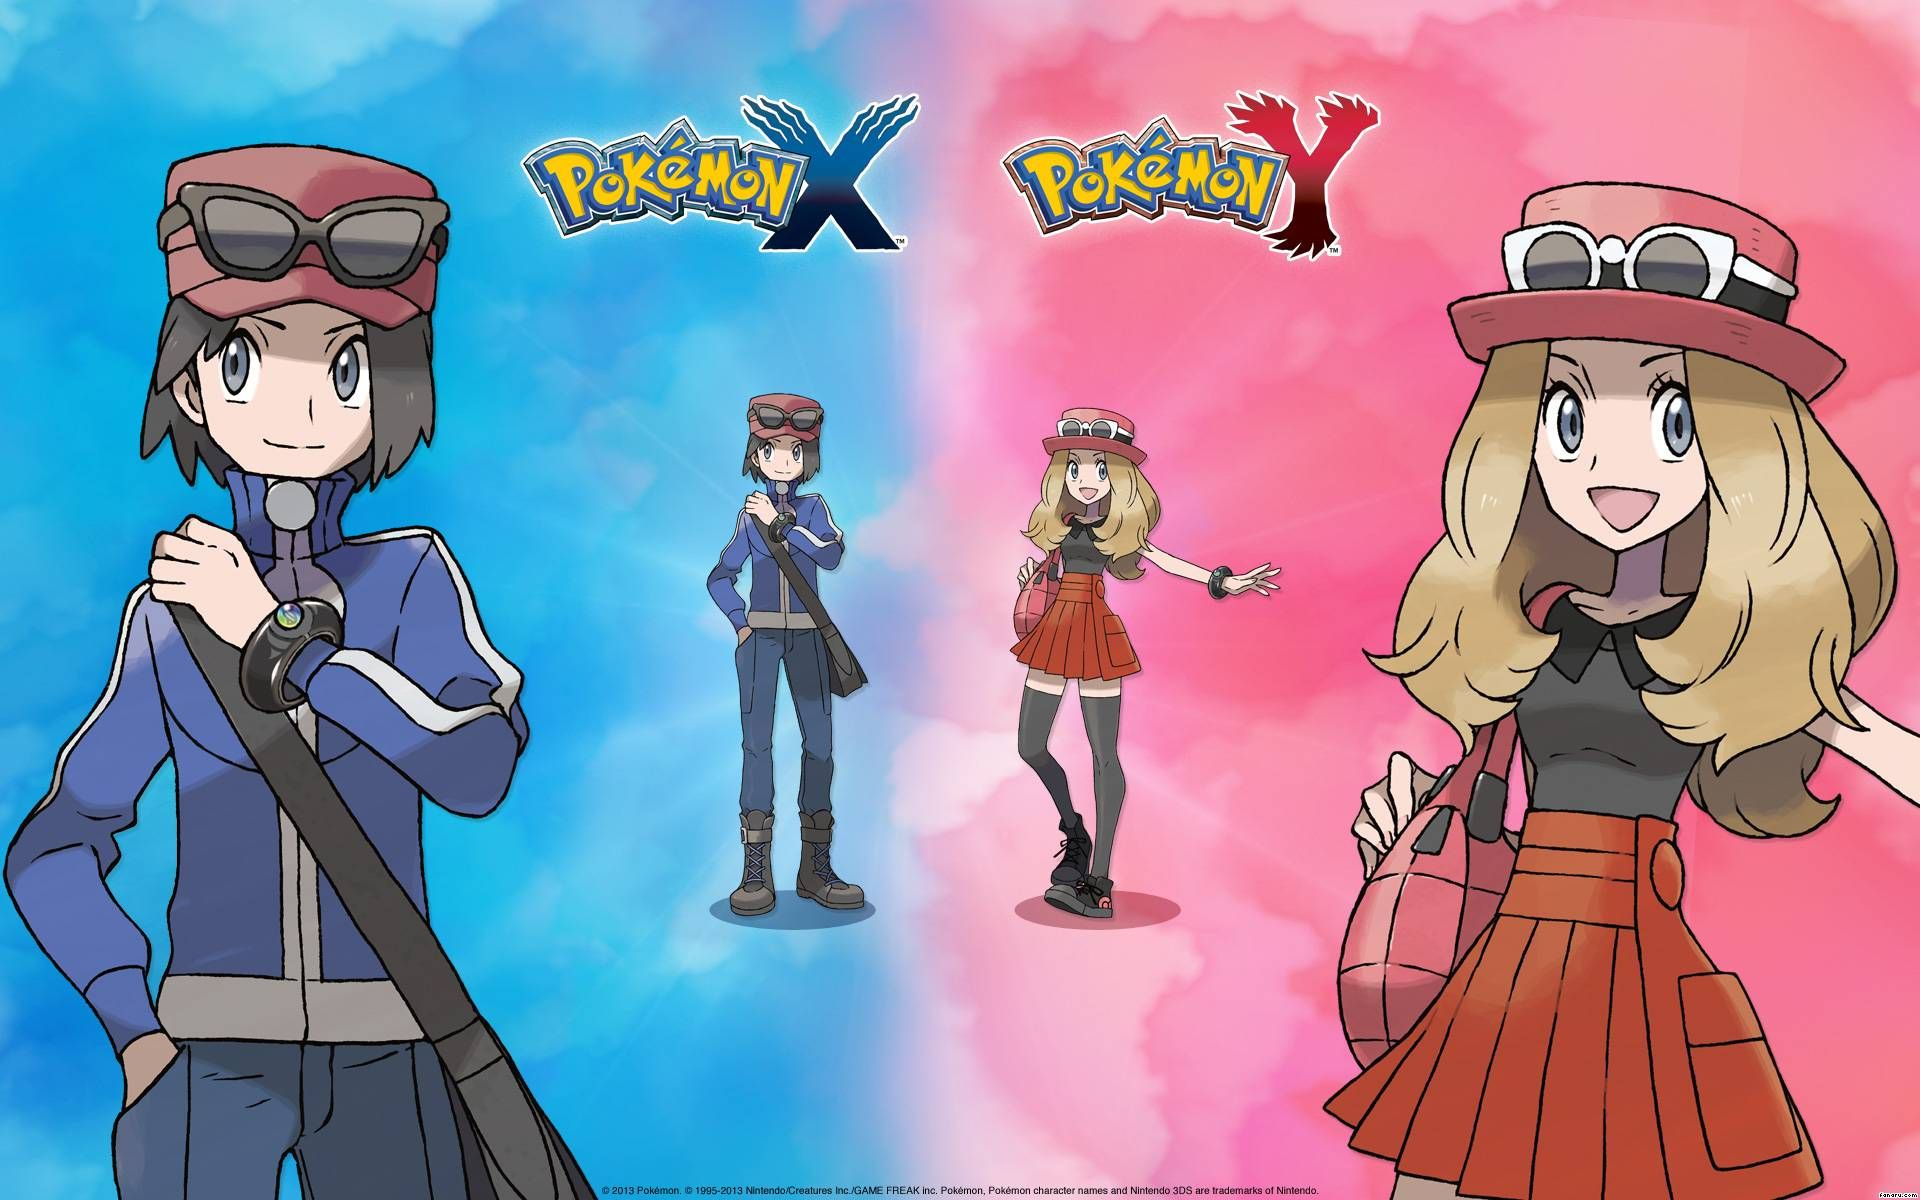 Boy and girl trainers from pokemon x and y official wallpaper of boy and girl trainers from pokemon x and y official wallpaper of pokemon x y from voltagebd Gallery